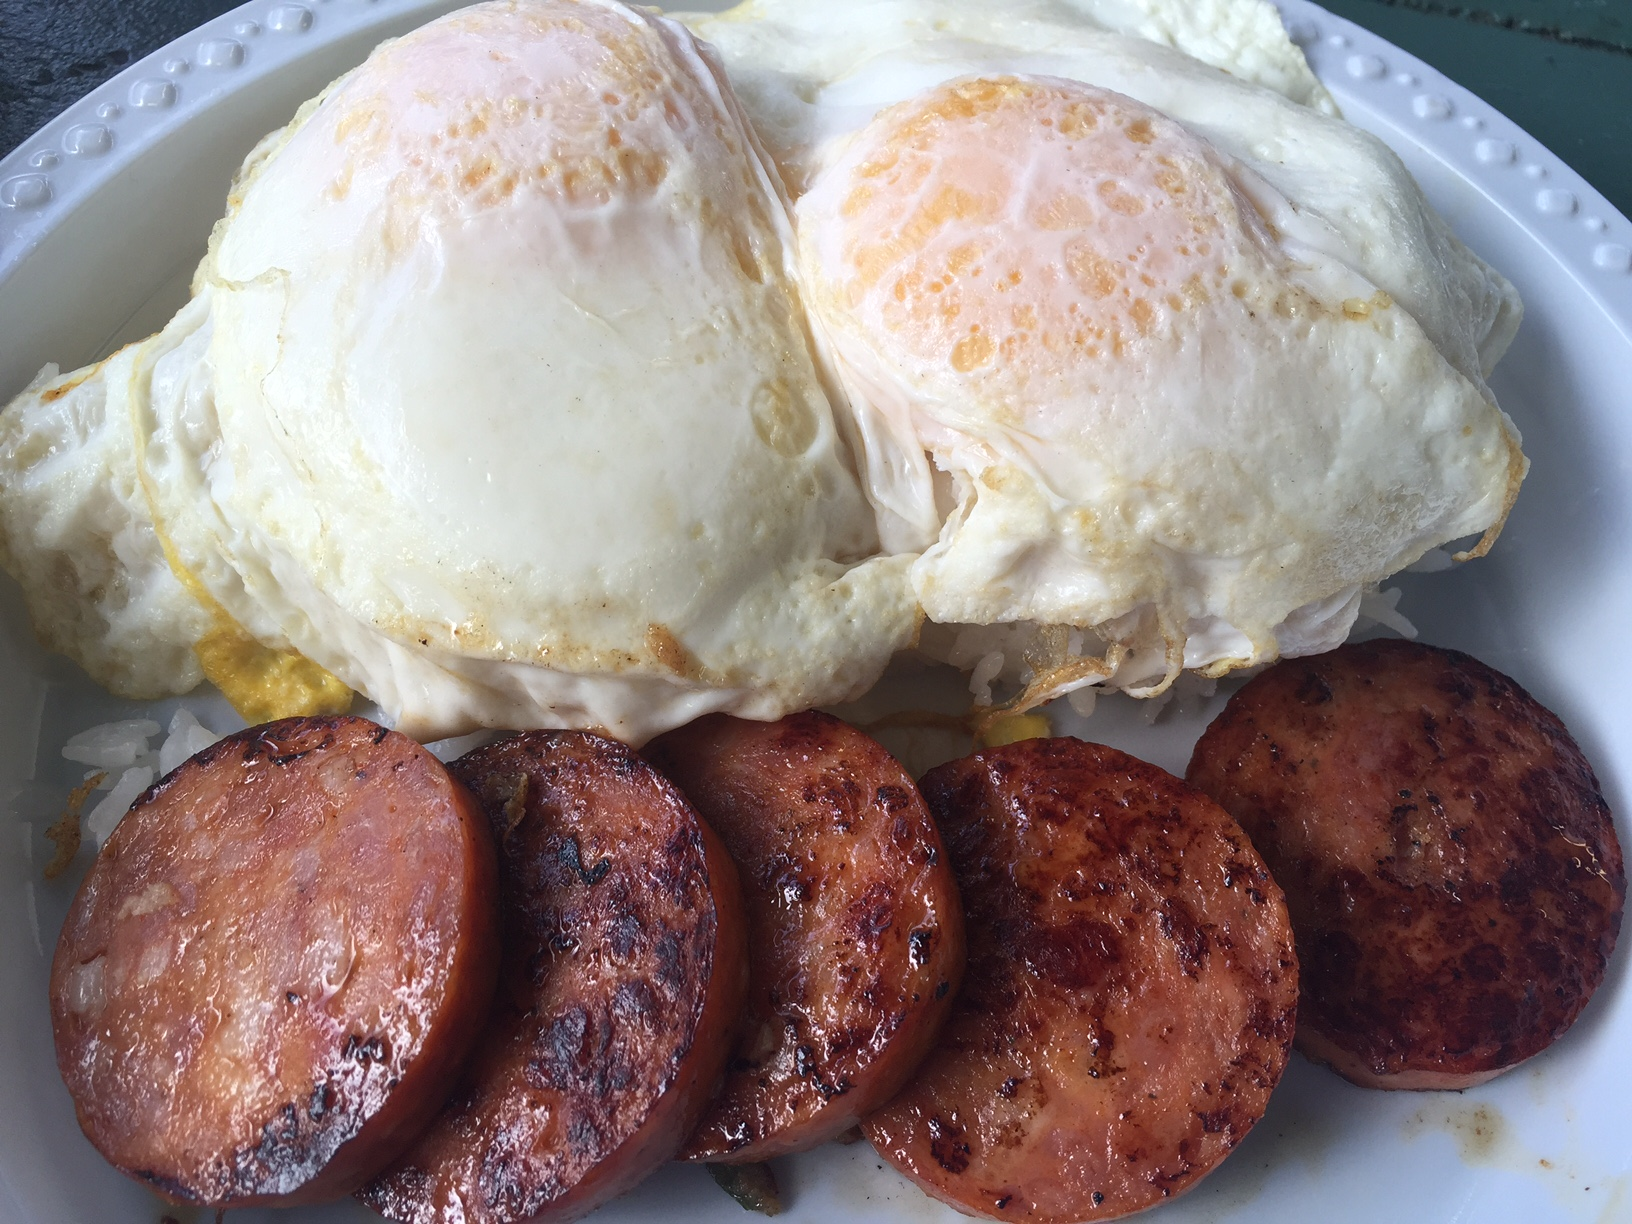 Rainbow Drive-In (Oahu): The Obamas always visit Hawaii for their Winter Break (I swear, we weren't secretly vacationing with them), and one of Barack's favorite places is Rainbow Drive-In. Here's a traditional breakfast of fried eggs over rice with Portuguese sausage.